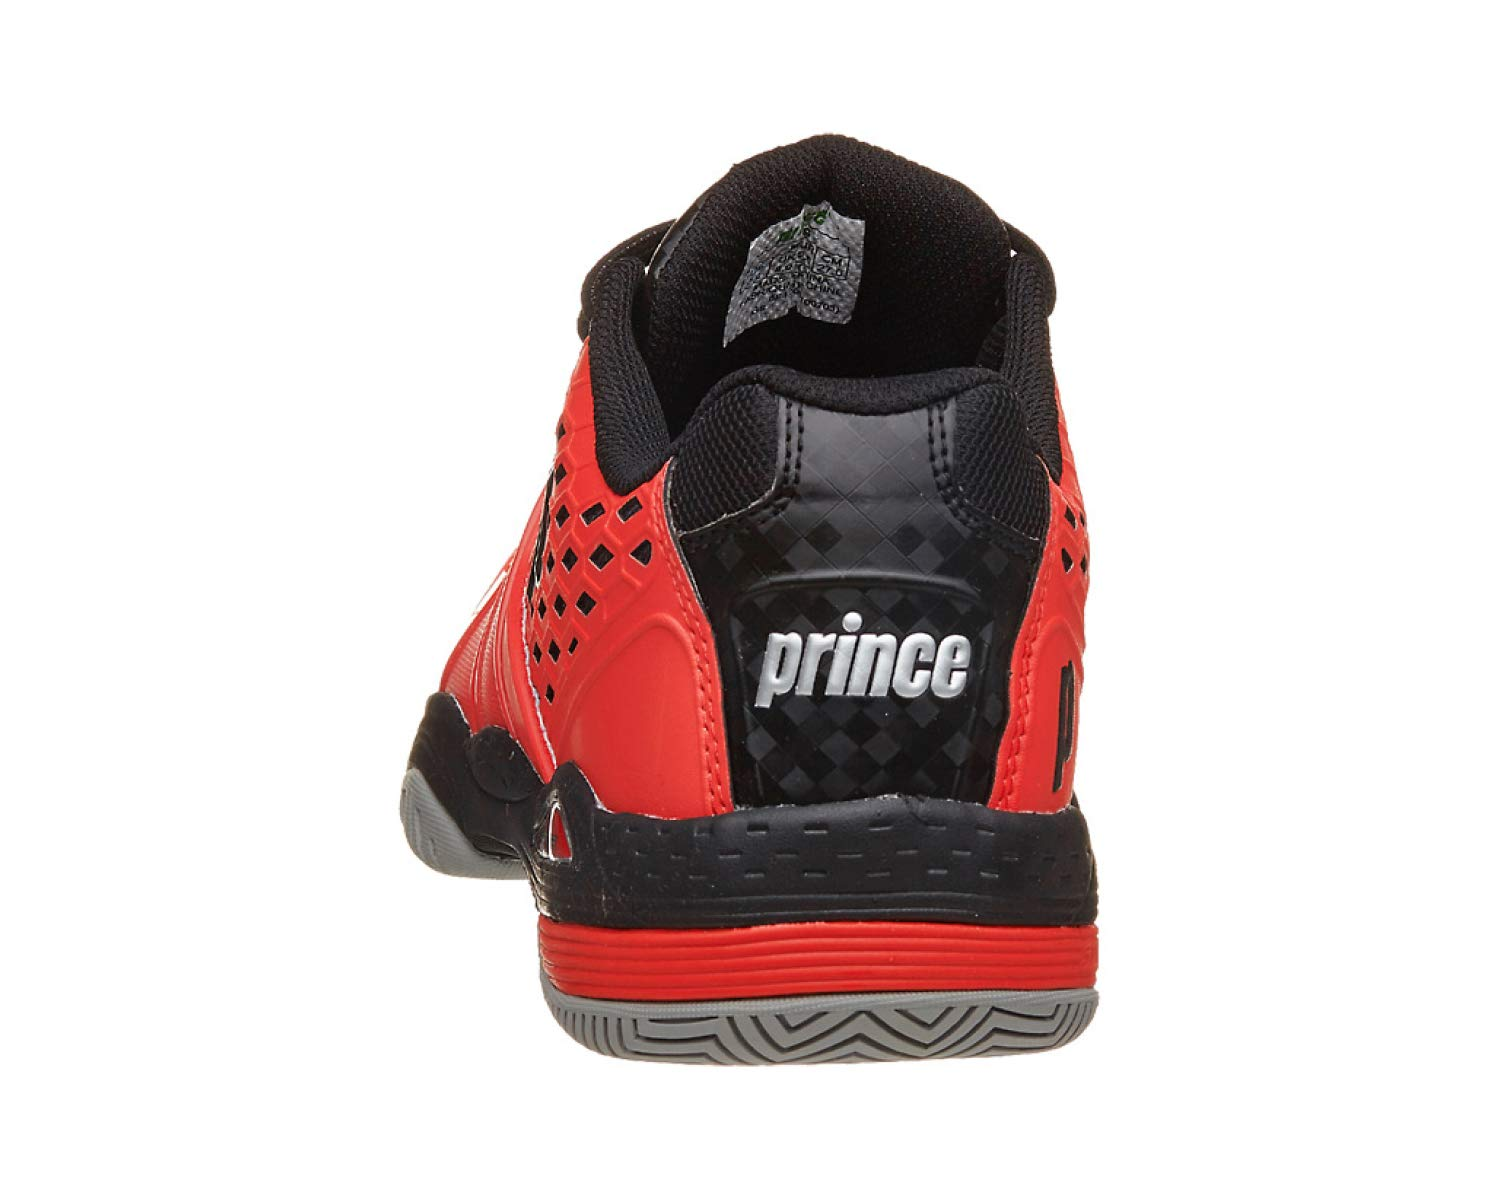 /Chaussures pour Homme Homme Warrior M Prince Warrior M/